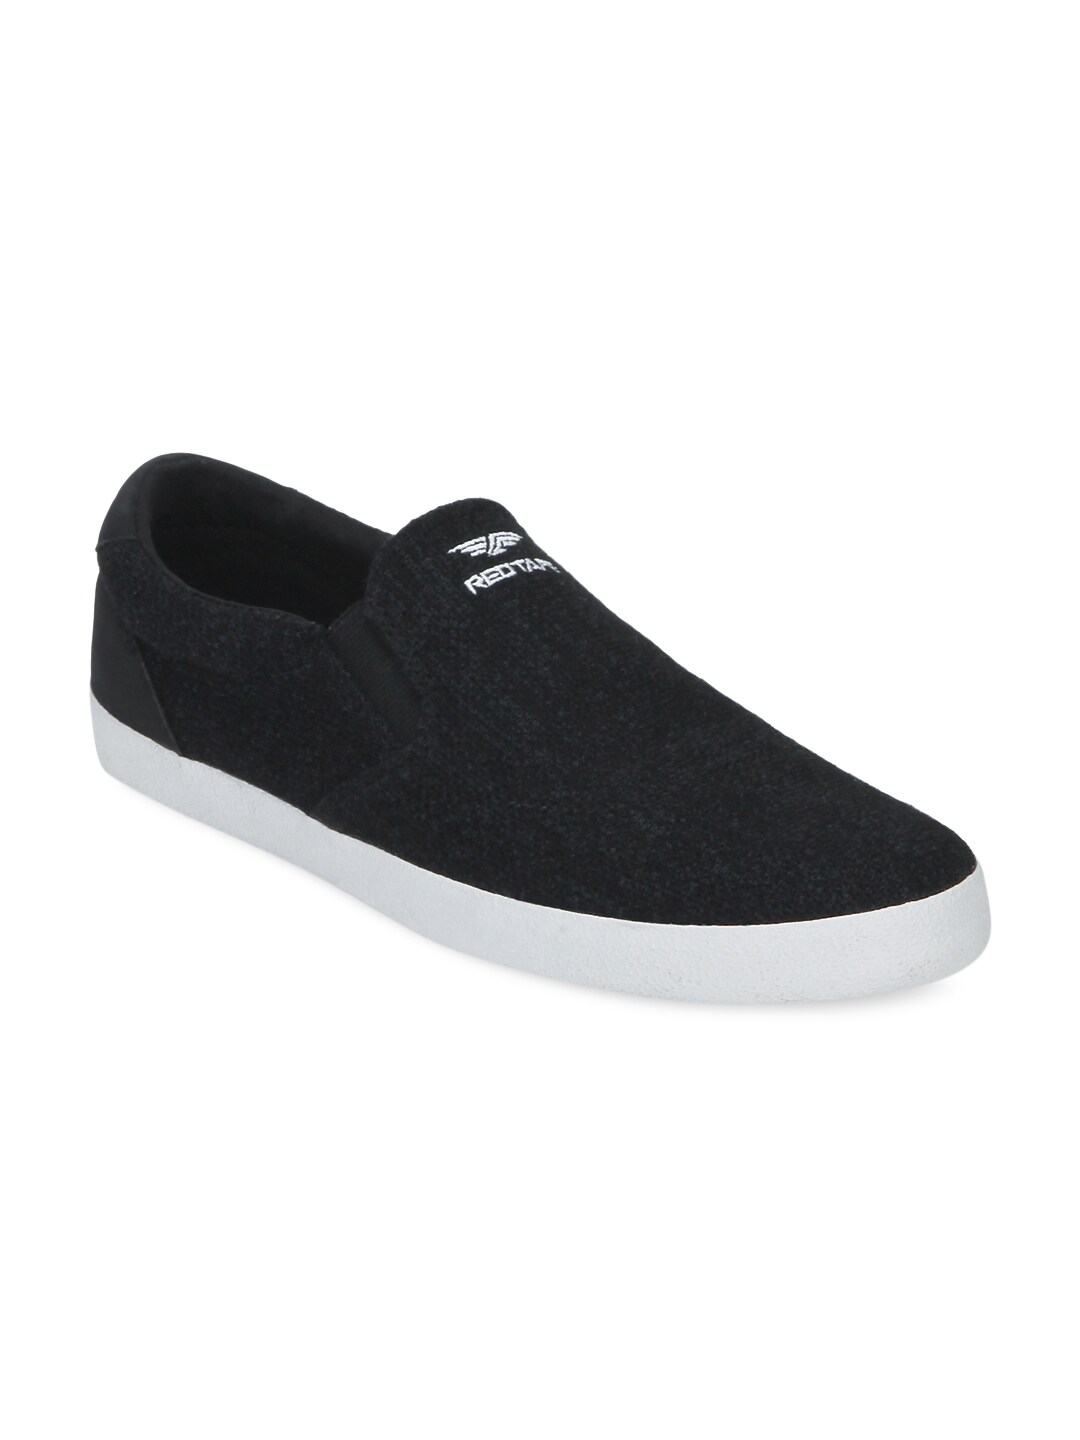 Red Tape Men Black Slip-On Sneakers image